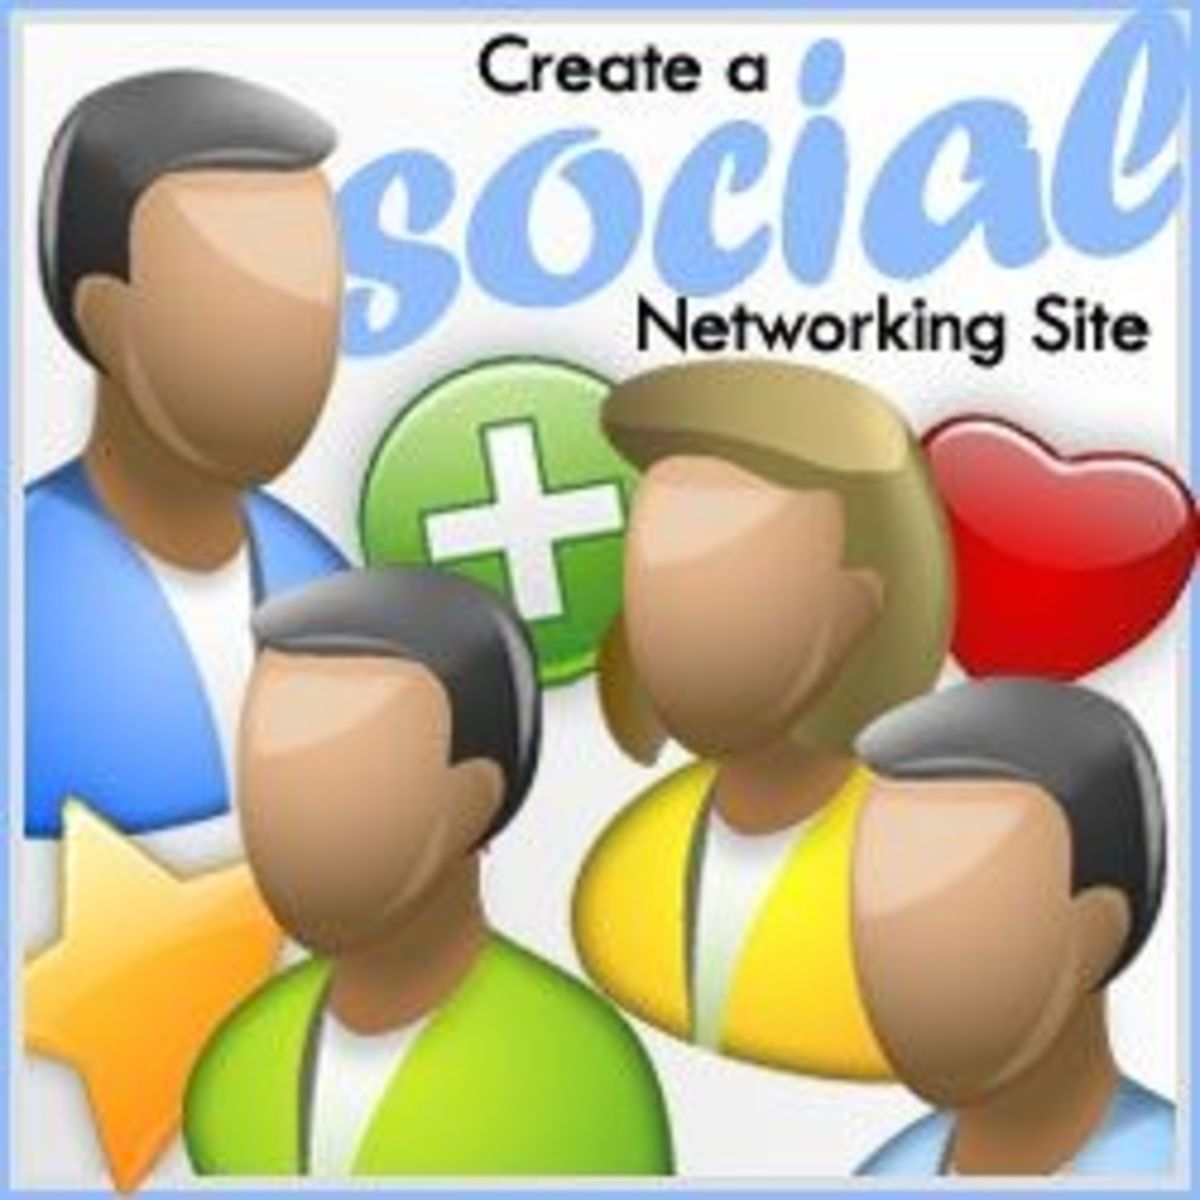 Create a Social Networking Site